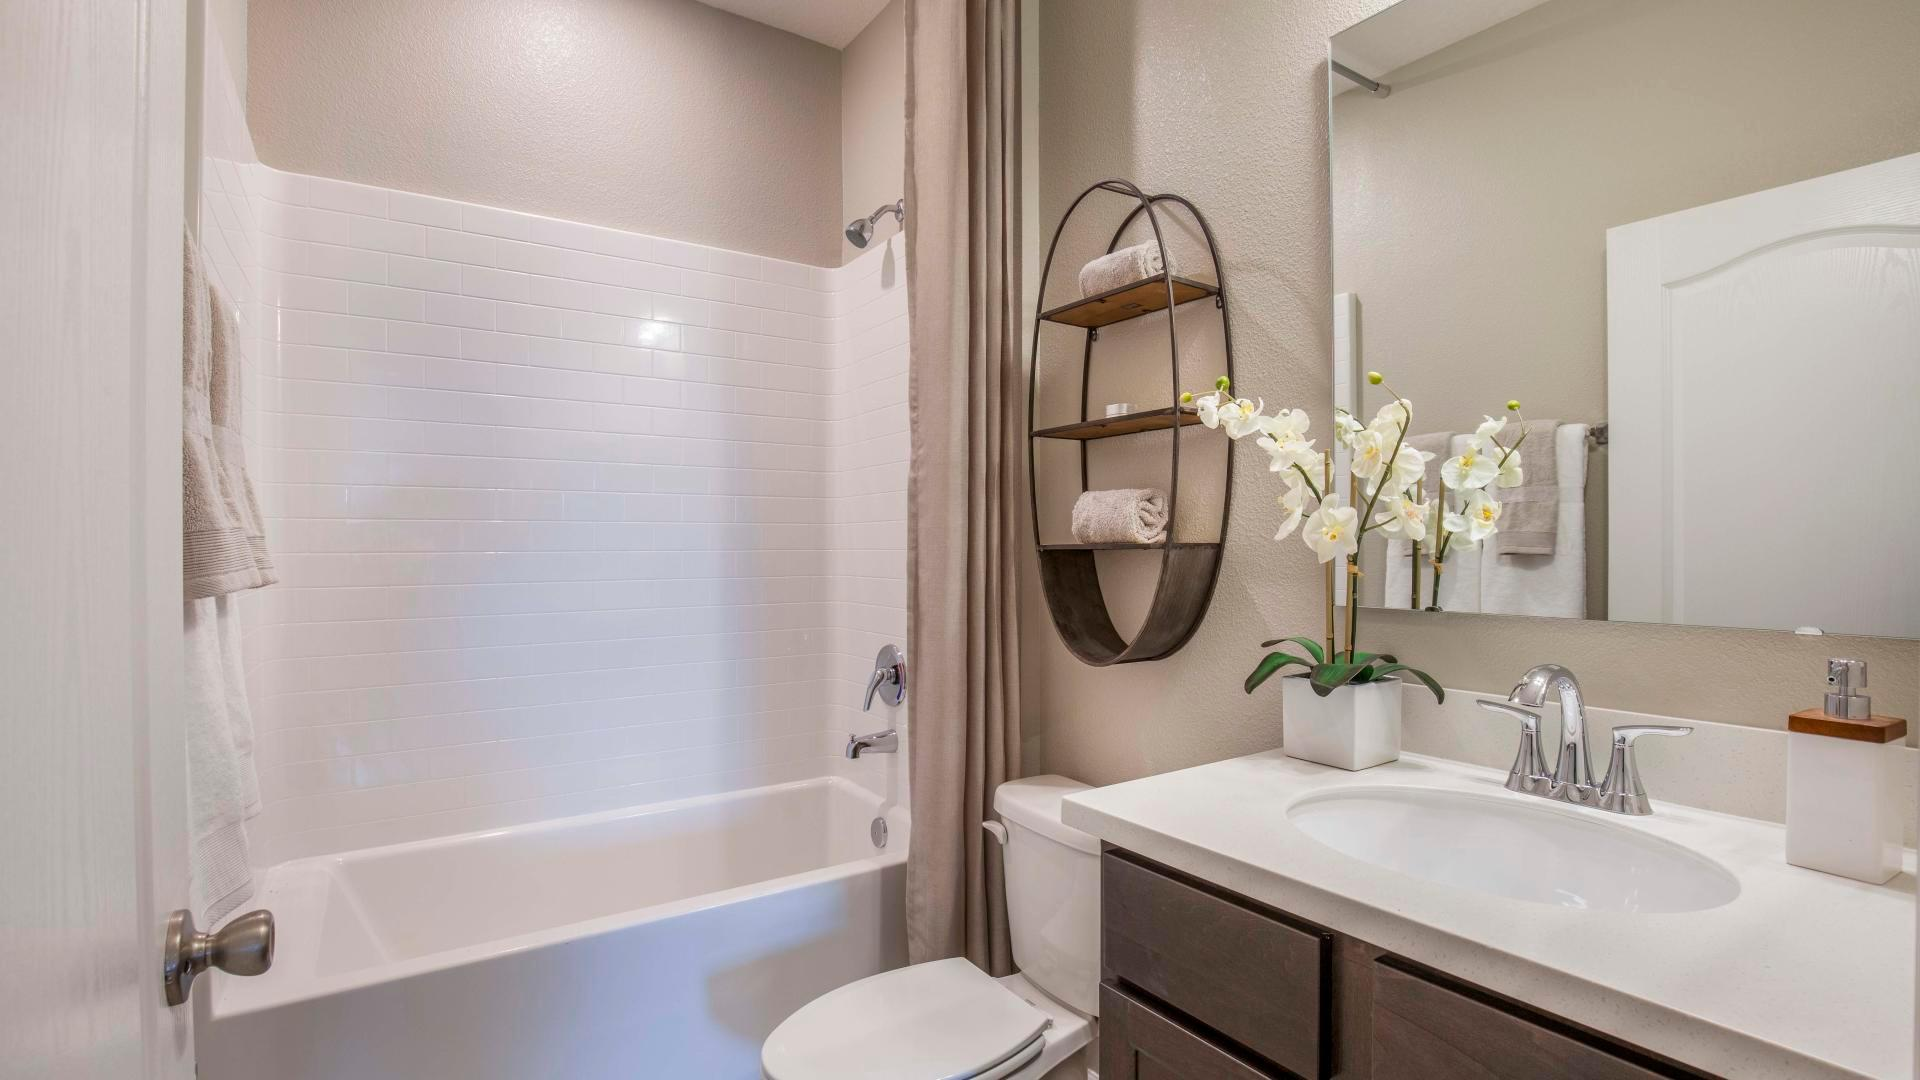 Bathroom featured in the Ashton By Maronda Homes in Melbourne, FL